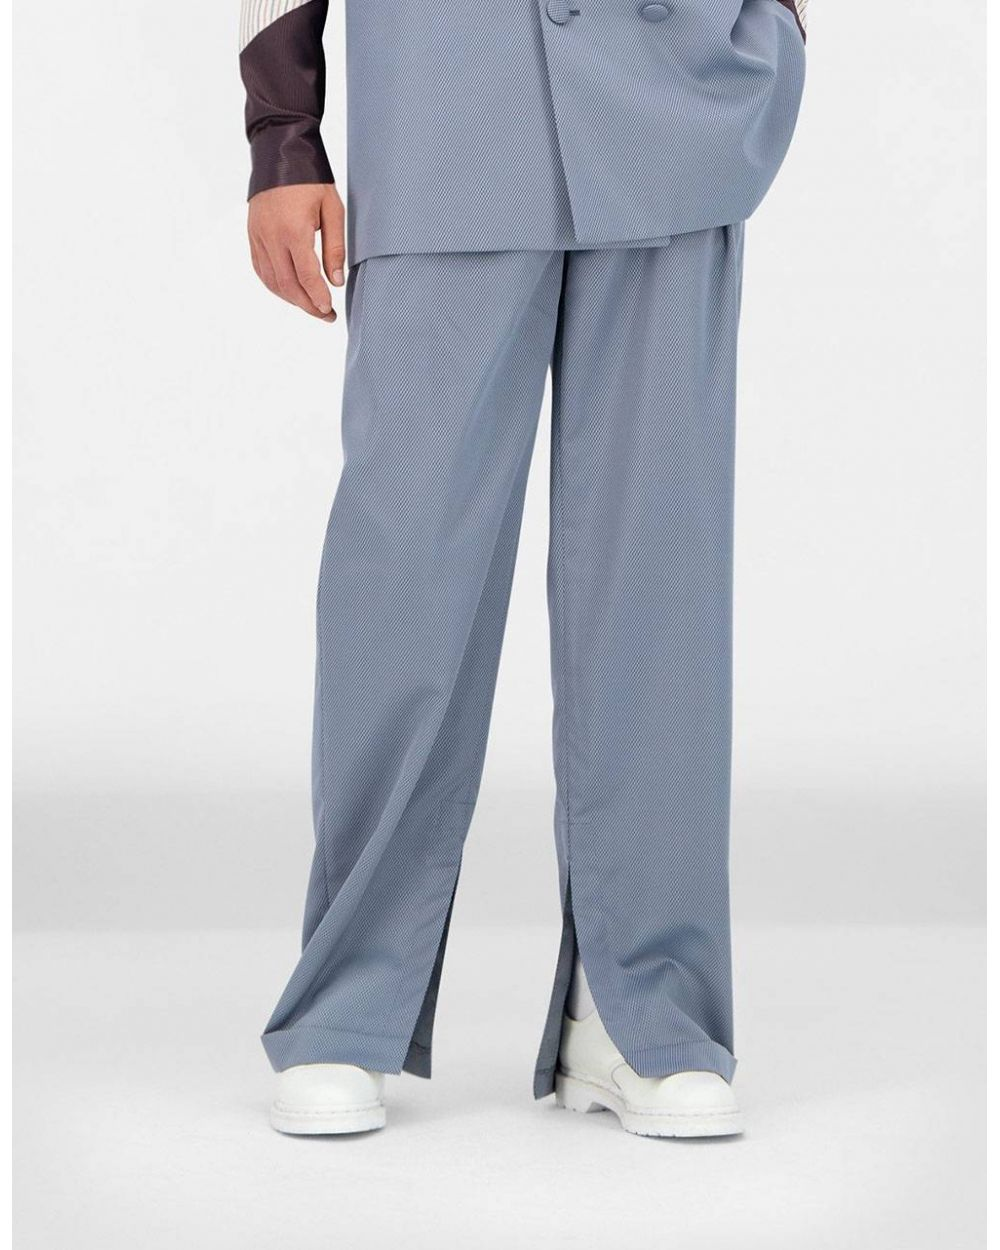 Daily Paper Johan pants - greyblue DAILY PAPER Pant 160,00€